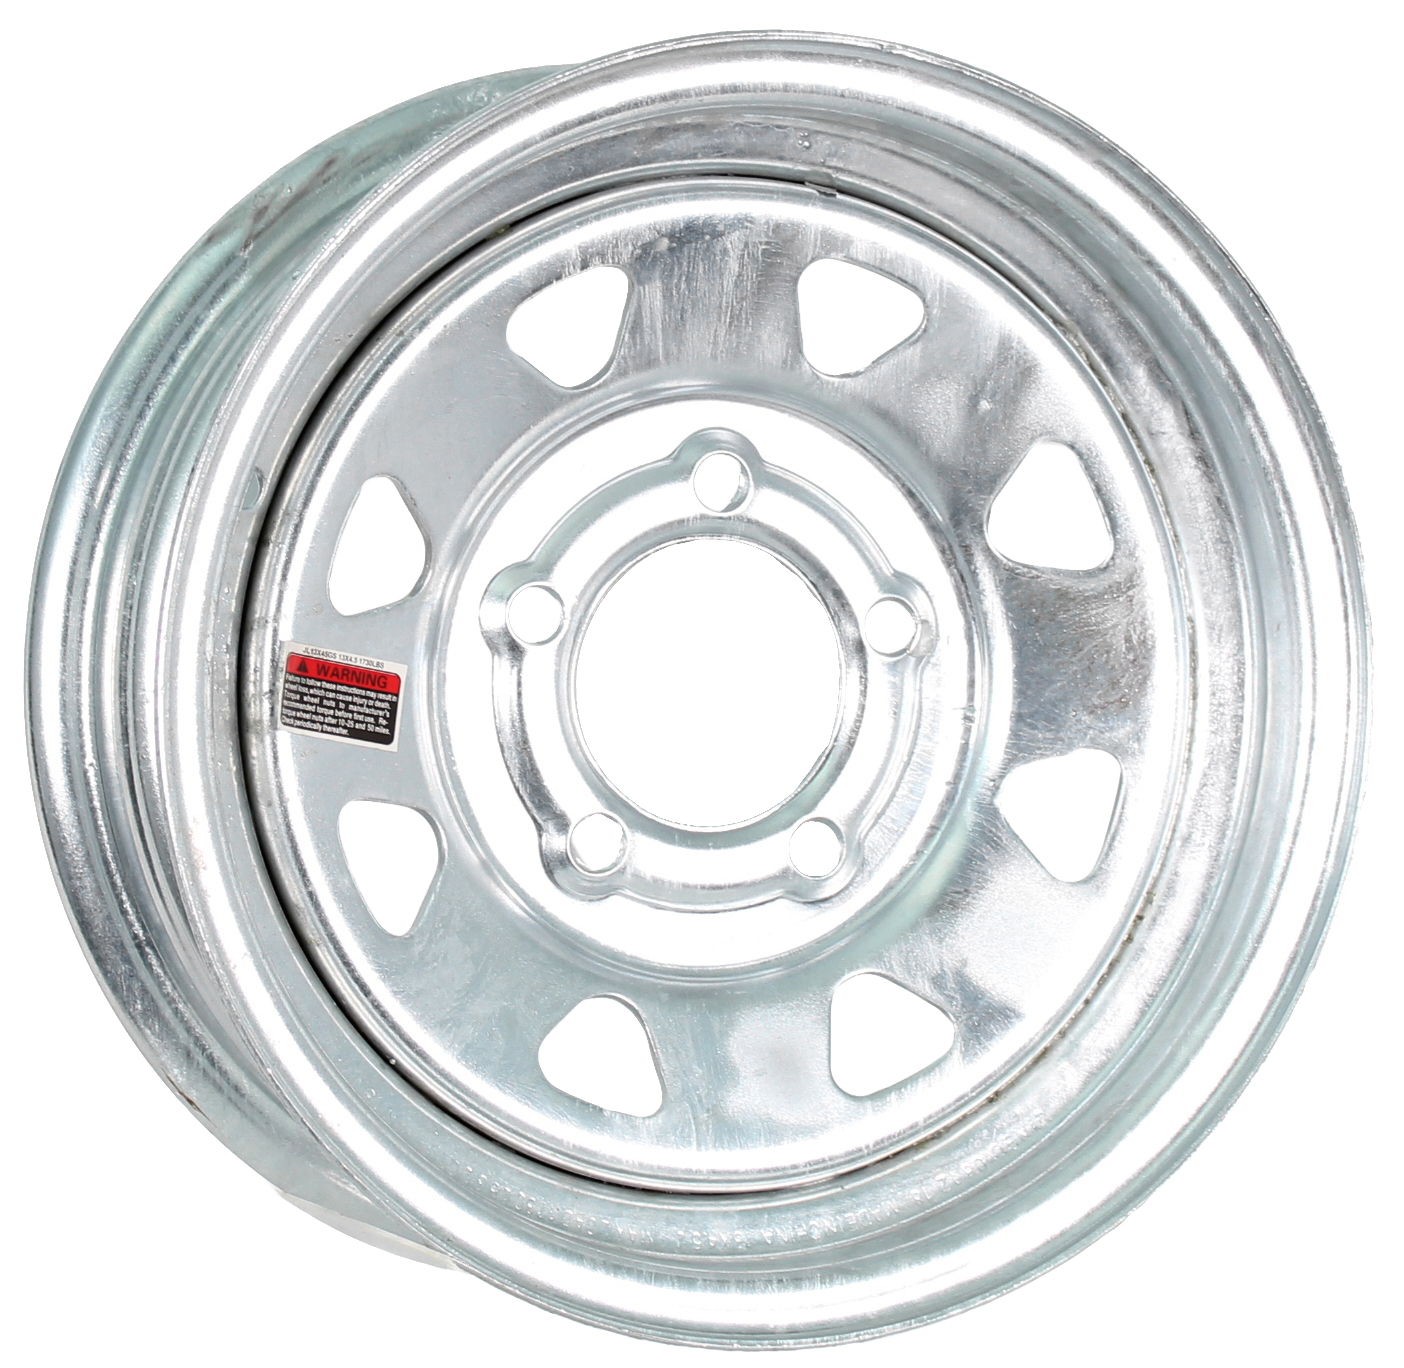 13x4.5 5-Lug Galvanized Spoke Steel Trailer Wheel Image